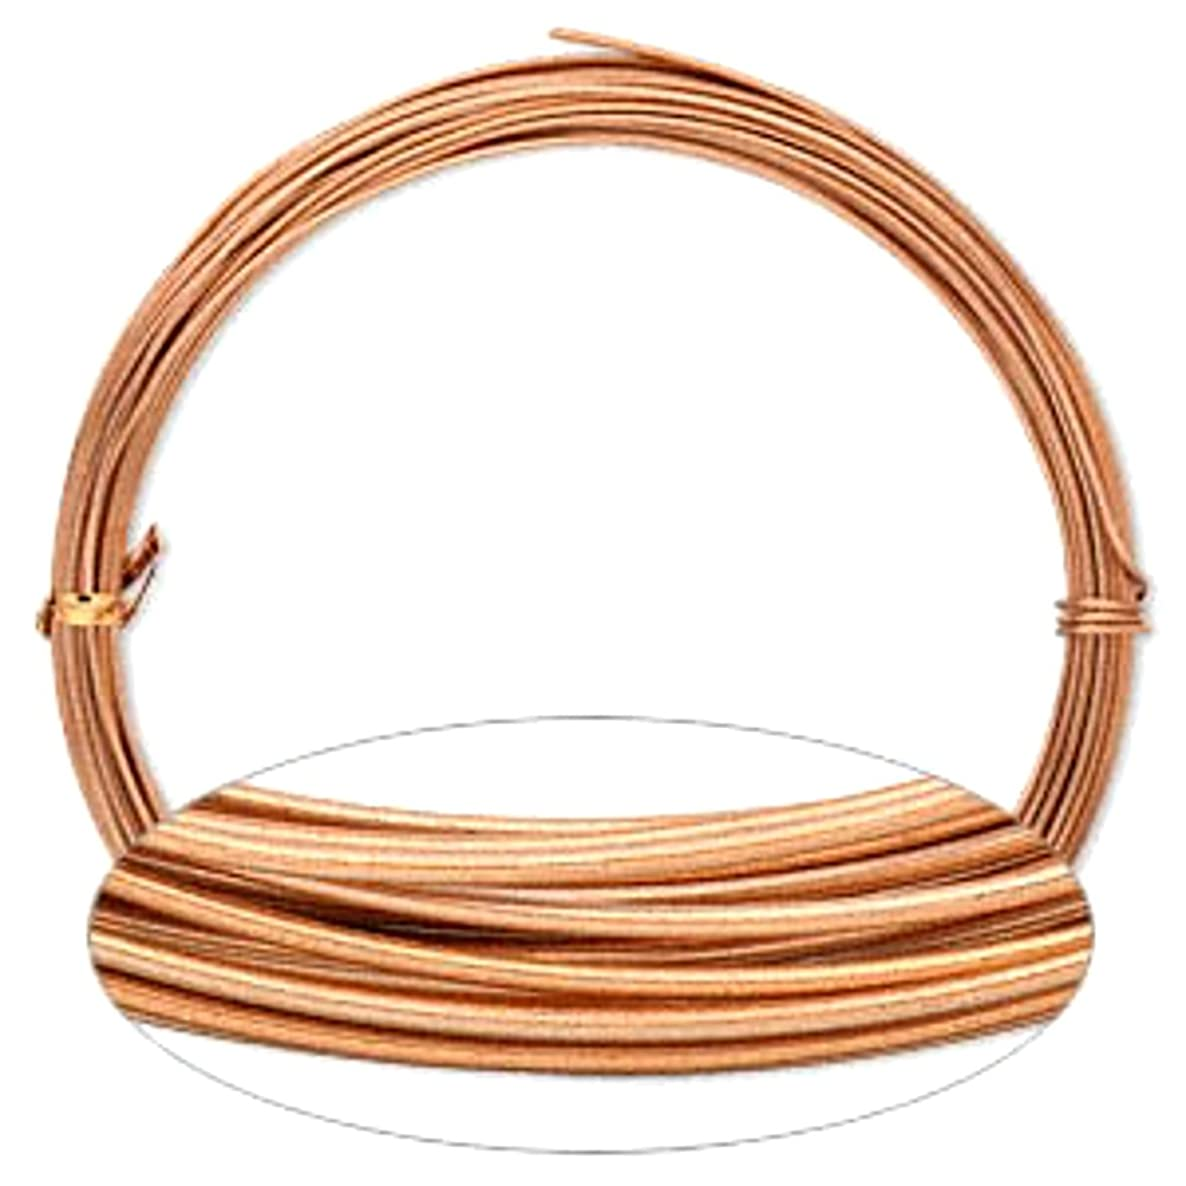 Copper Aluminum Wire 16 Gauge Round Wrapping Jewelry Craft 45 Foot Coil